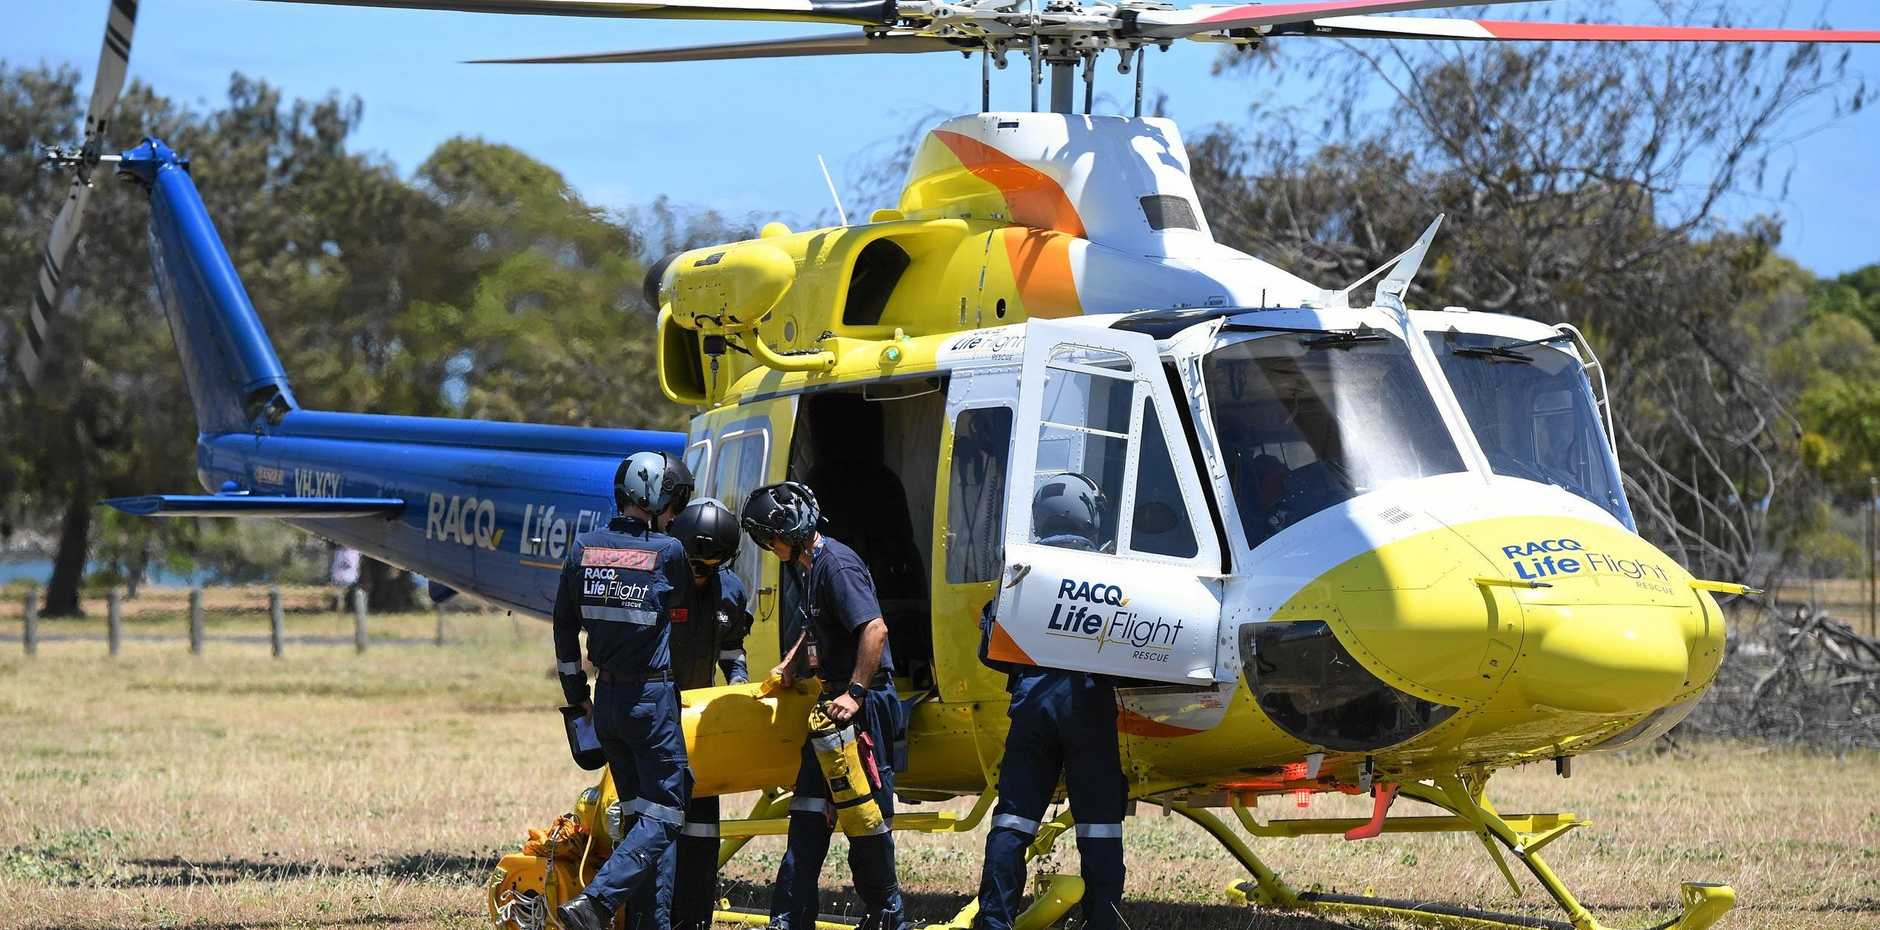 FUN: A fundraiser will be held for RACQ Life Flight Rescue.